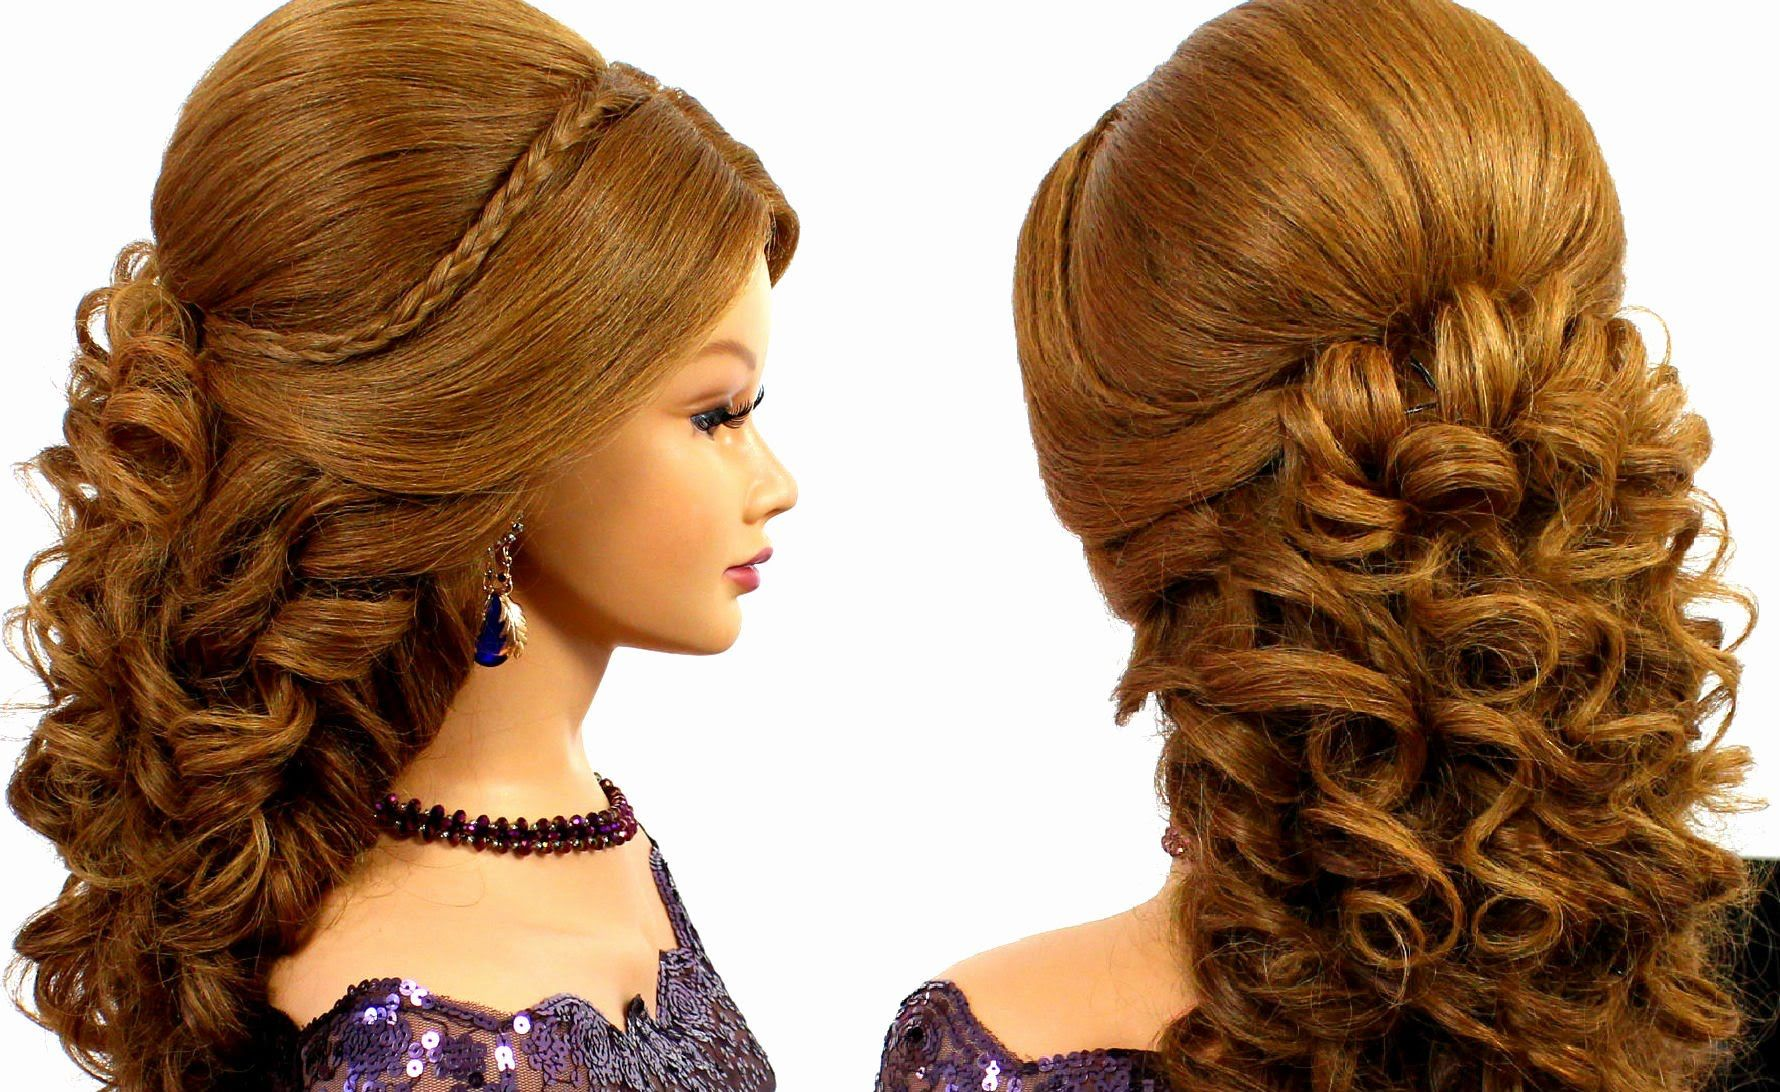 Romantic wedding prom hairstyle for long hair braided buns